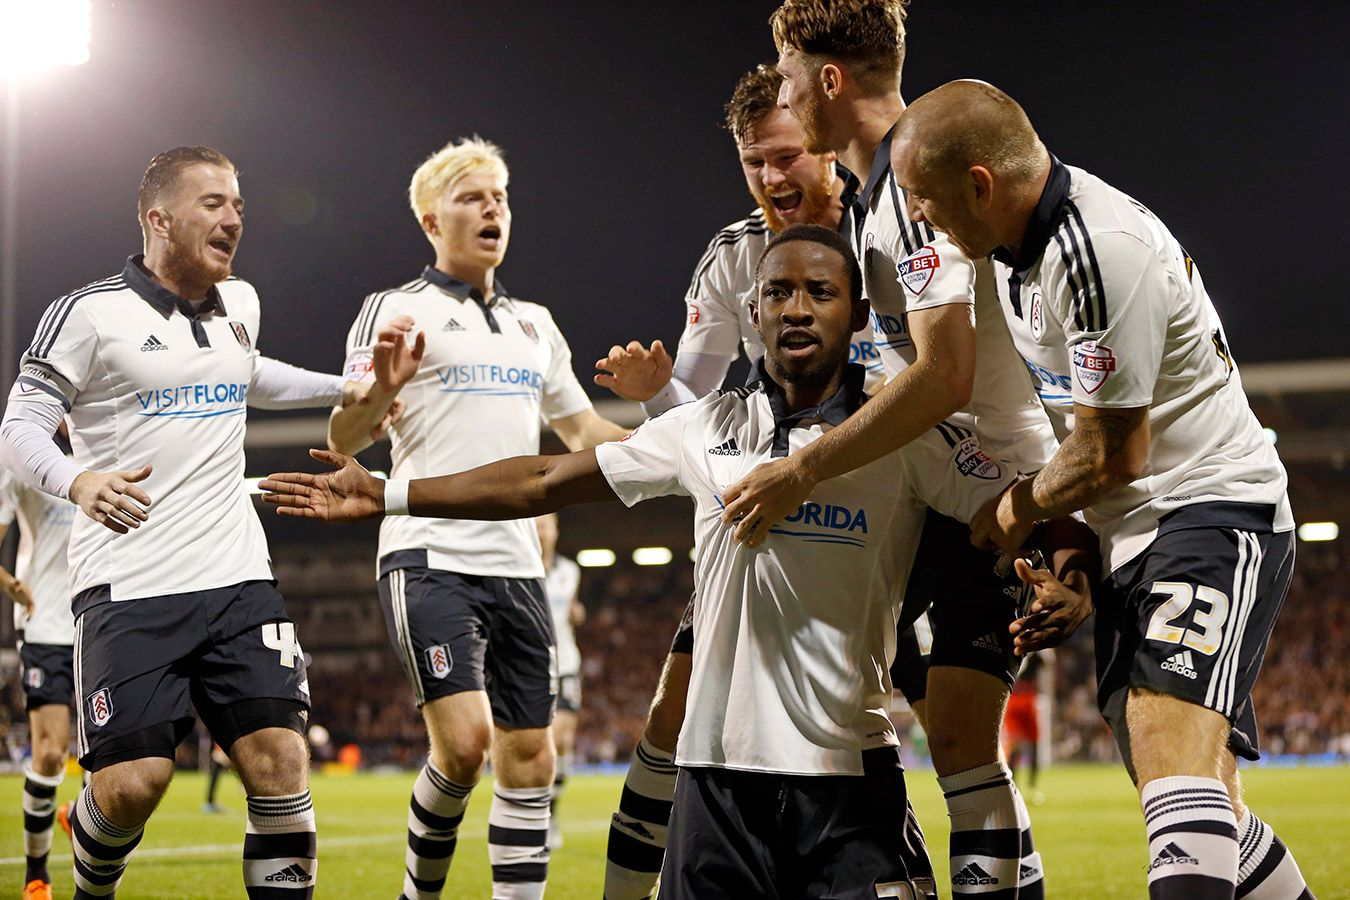 Fulham players celebrating scoring a goal. Photo: Backpage Images